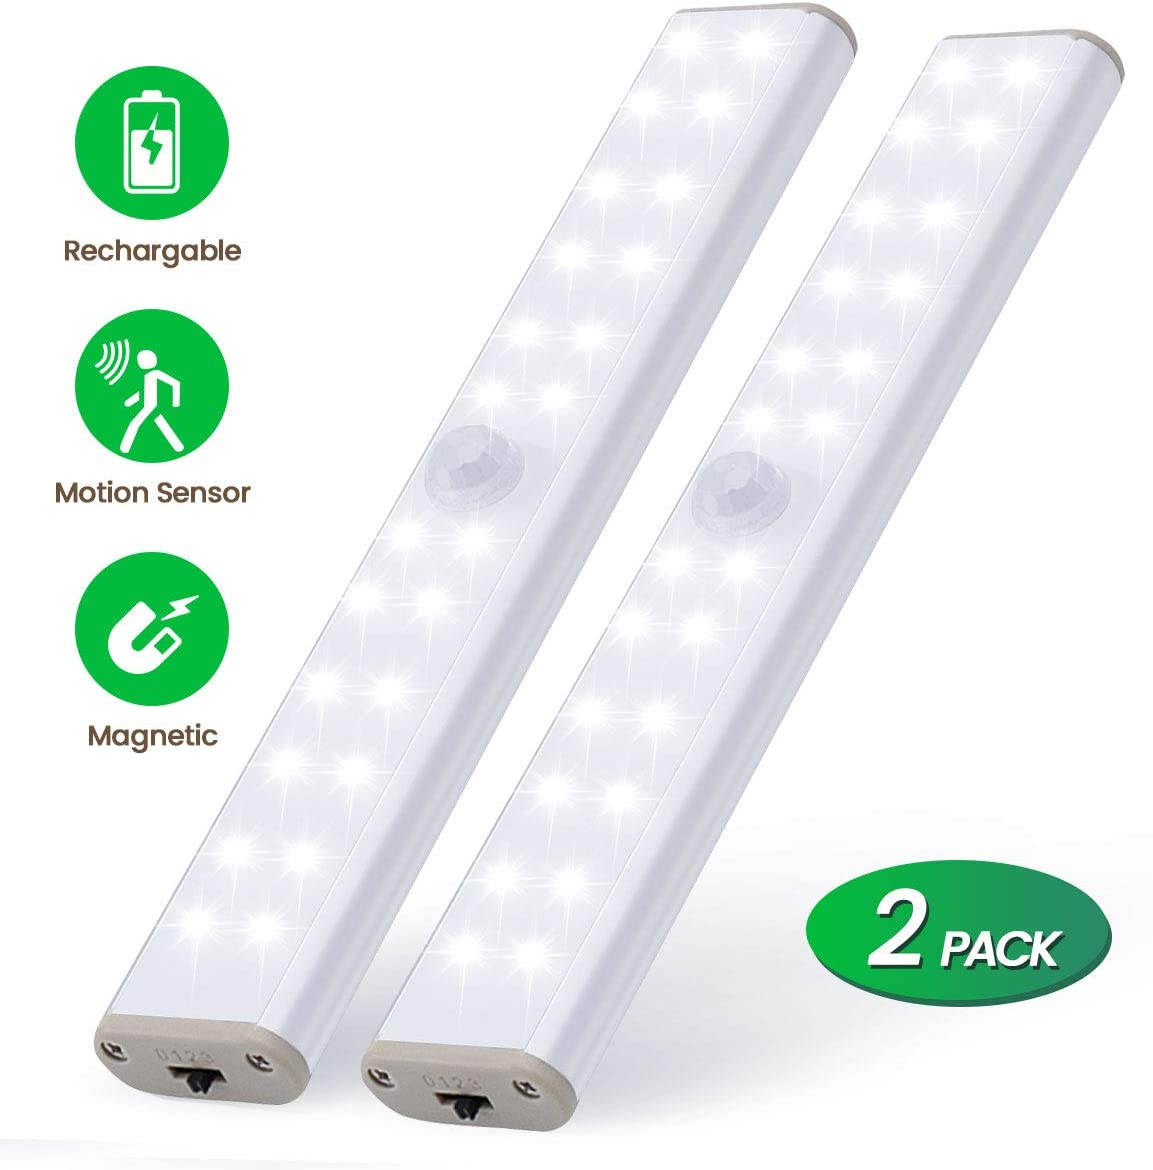 LKESBO LED Under Cabinet Light Indoor Motion Sensor 24 LED Rechargable 2 Pack Closet Lights Kitchen Motion Lighting Battery with USB Cable Magnet Bar for Cabinet Kitchen Stairs Hallway